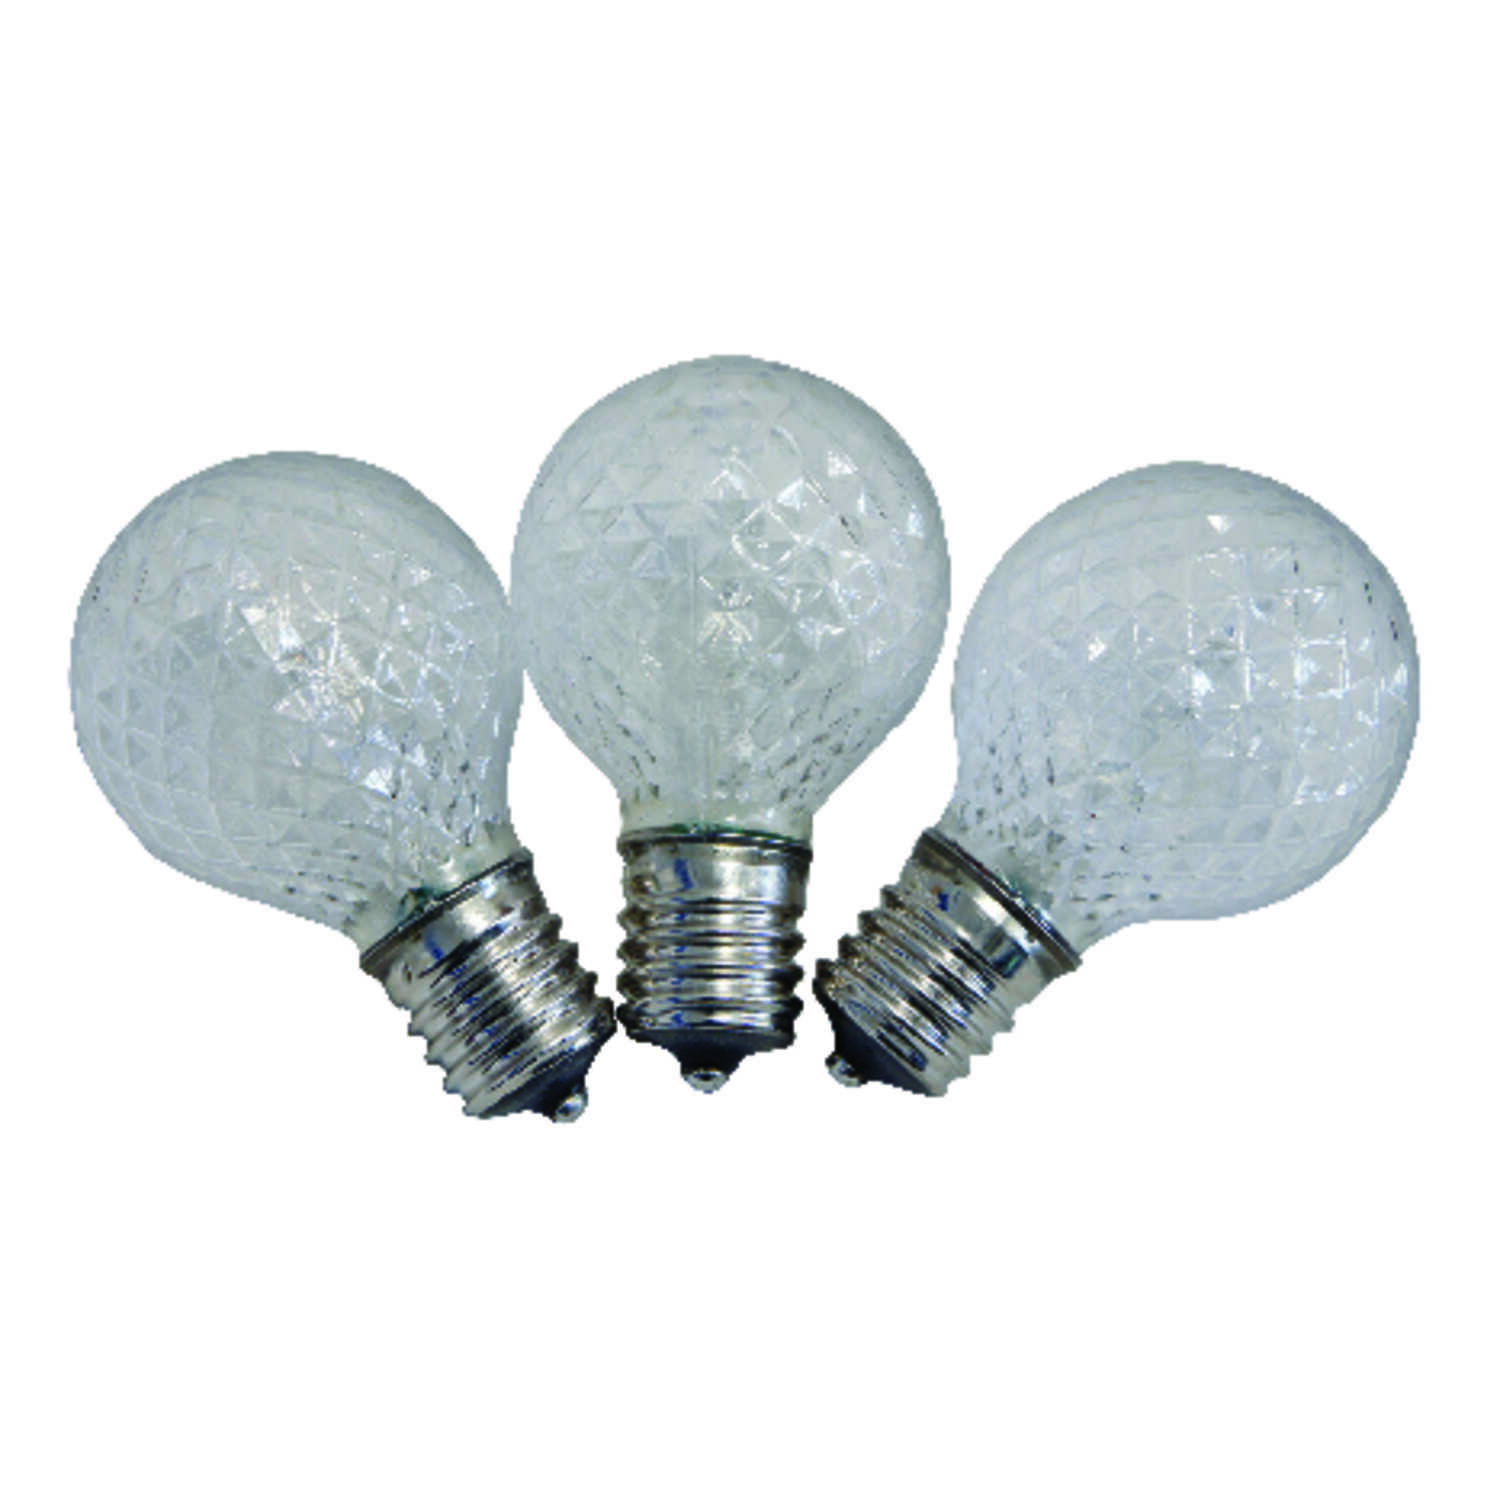 Celebrations  LED  G40  Replacement Bulb  Warm White  25 pk